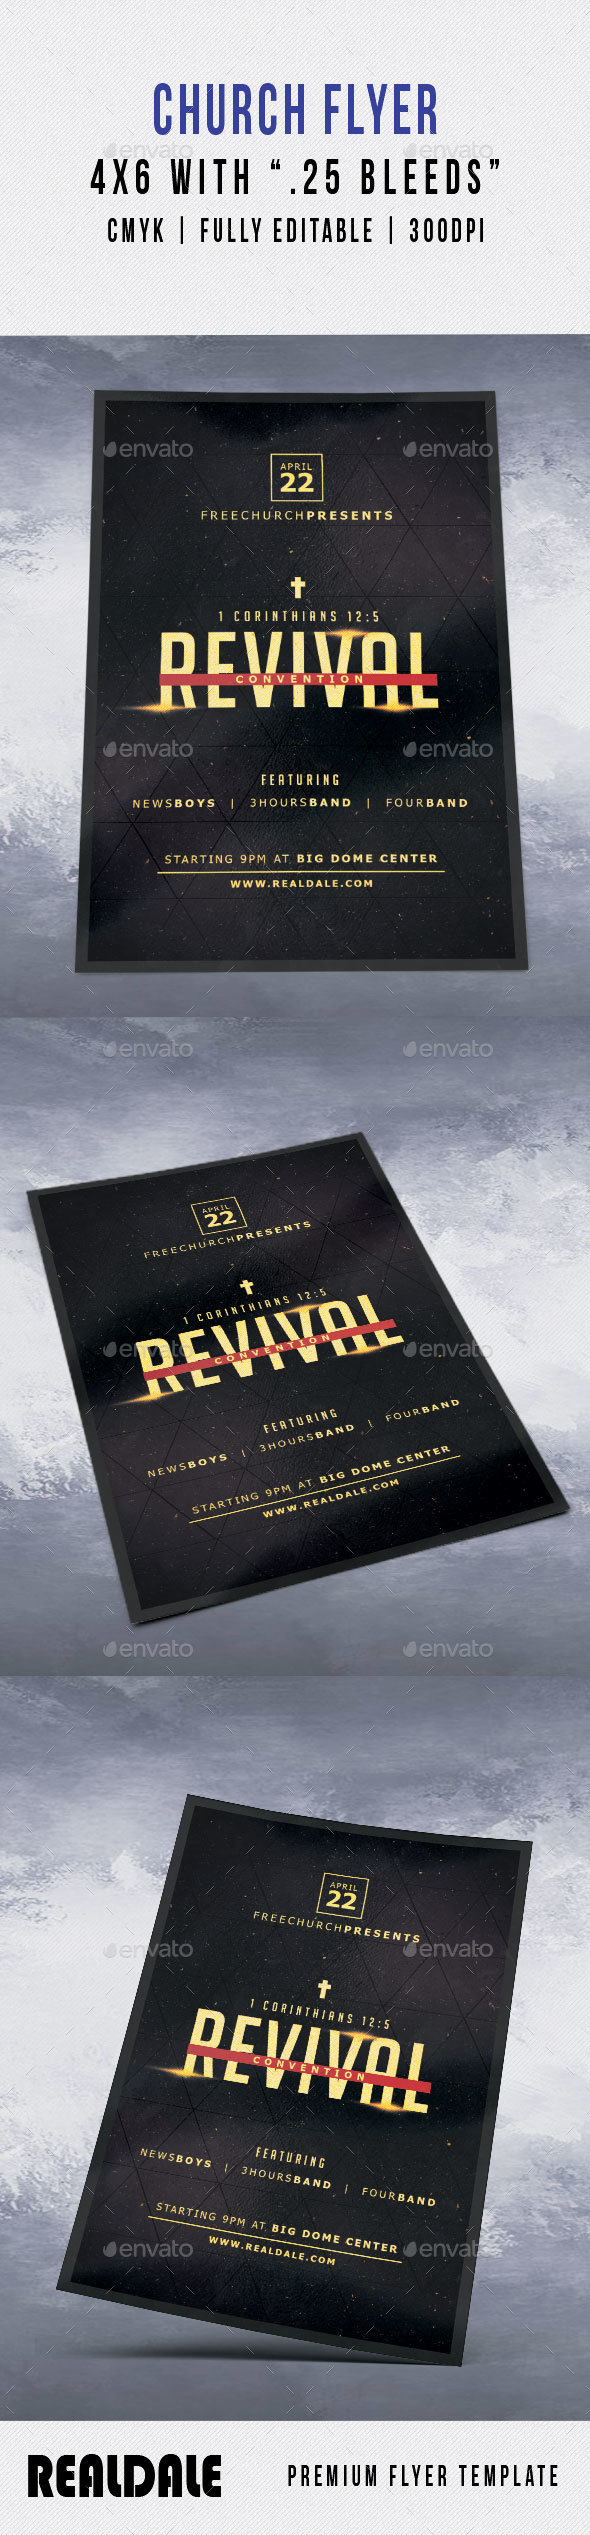 Revival Church Flyer - Events Flyers